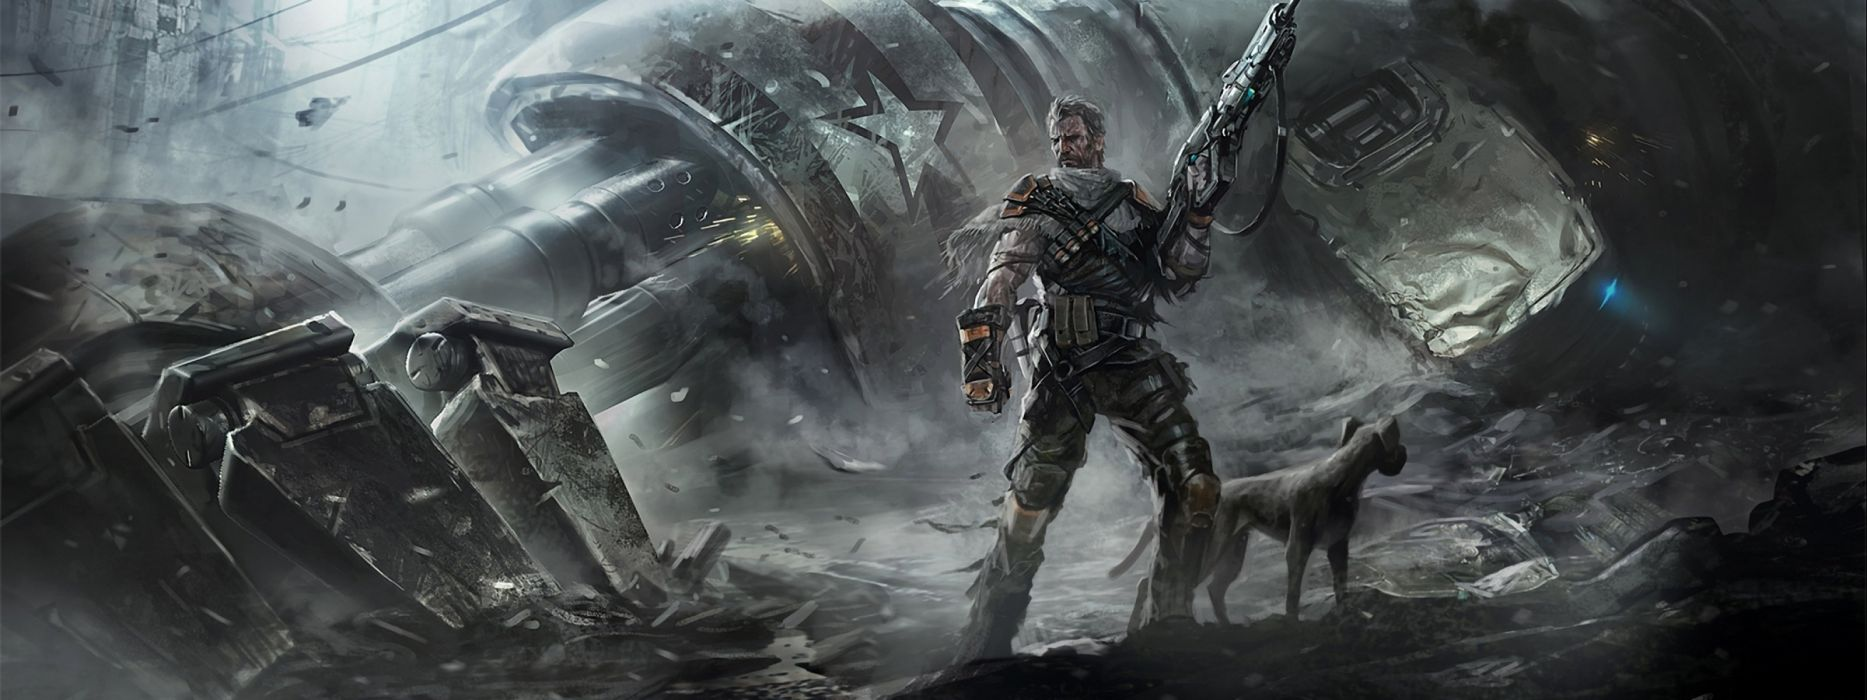 sci-fi warrior futuristic artwork art wallpaper